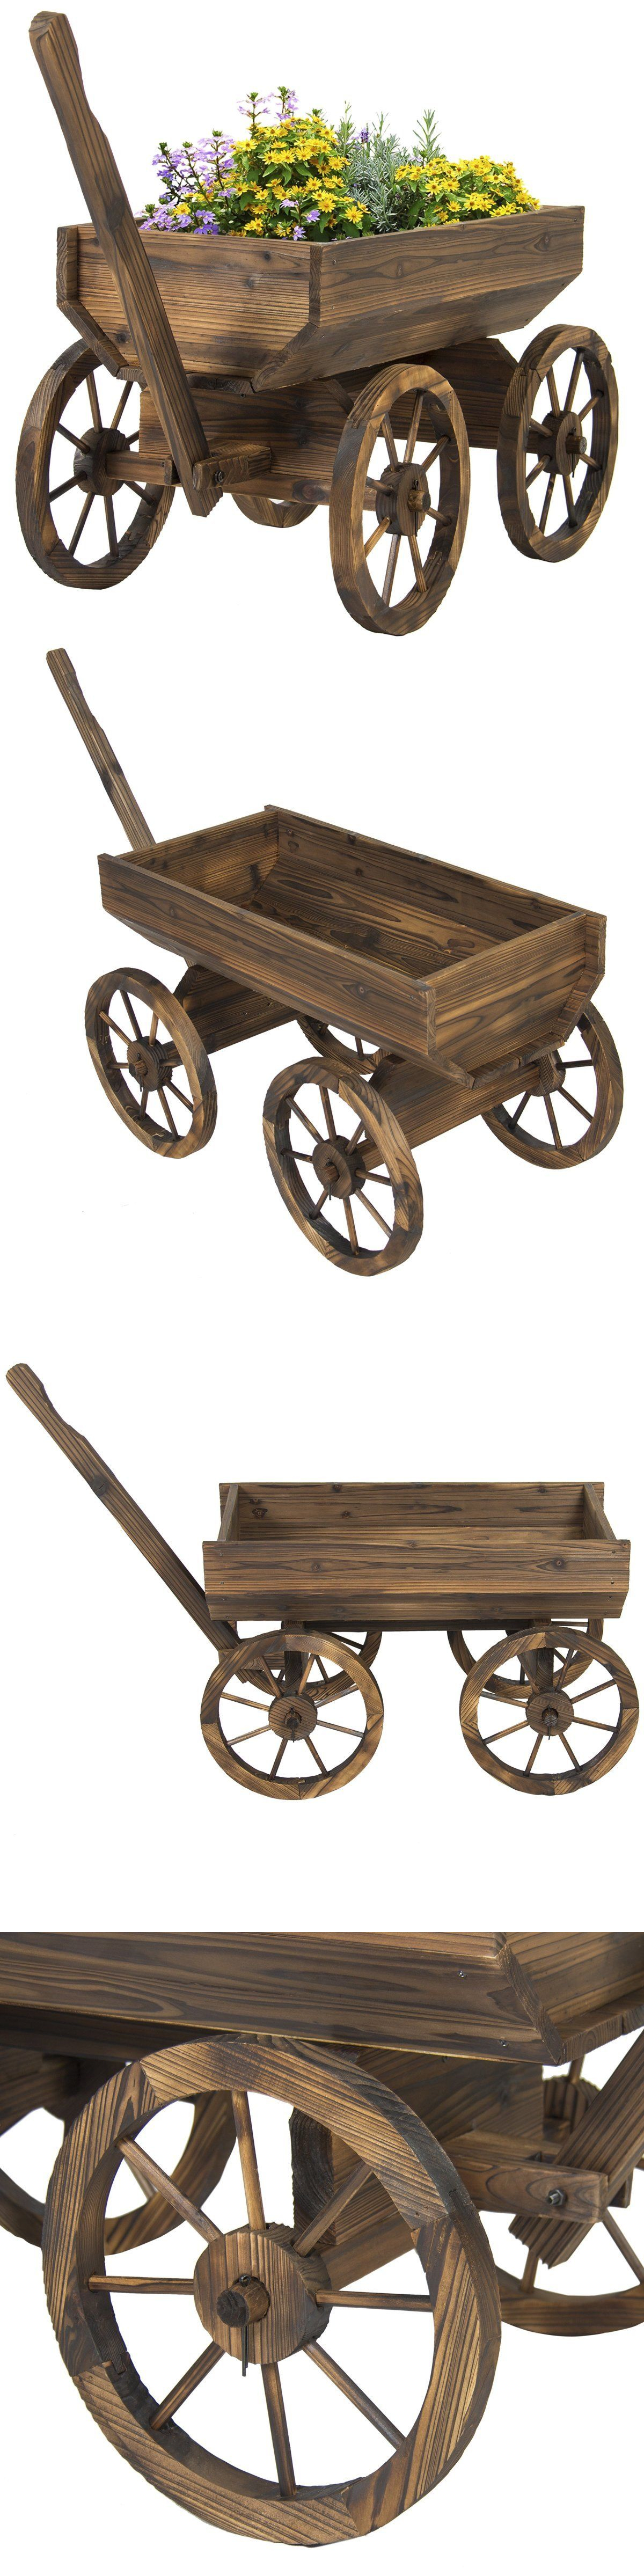 Plant Stands 29514: Garden Wagon Planter Wooden Patio Flower Pot Rustic  Cart Decor Backyard Plant